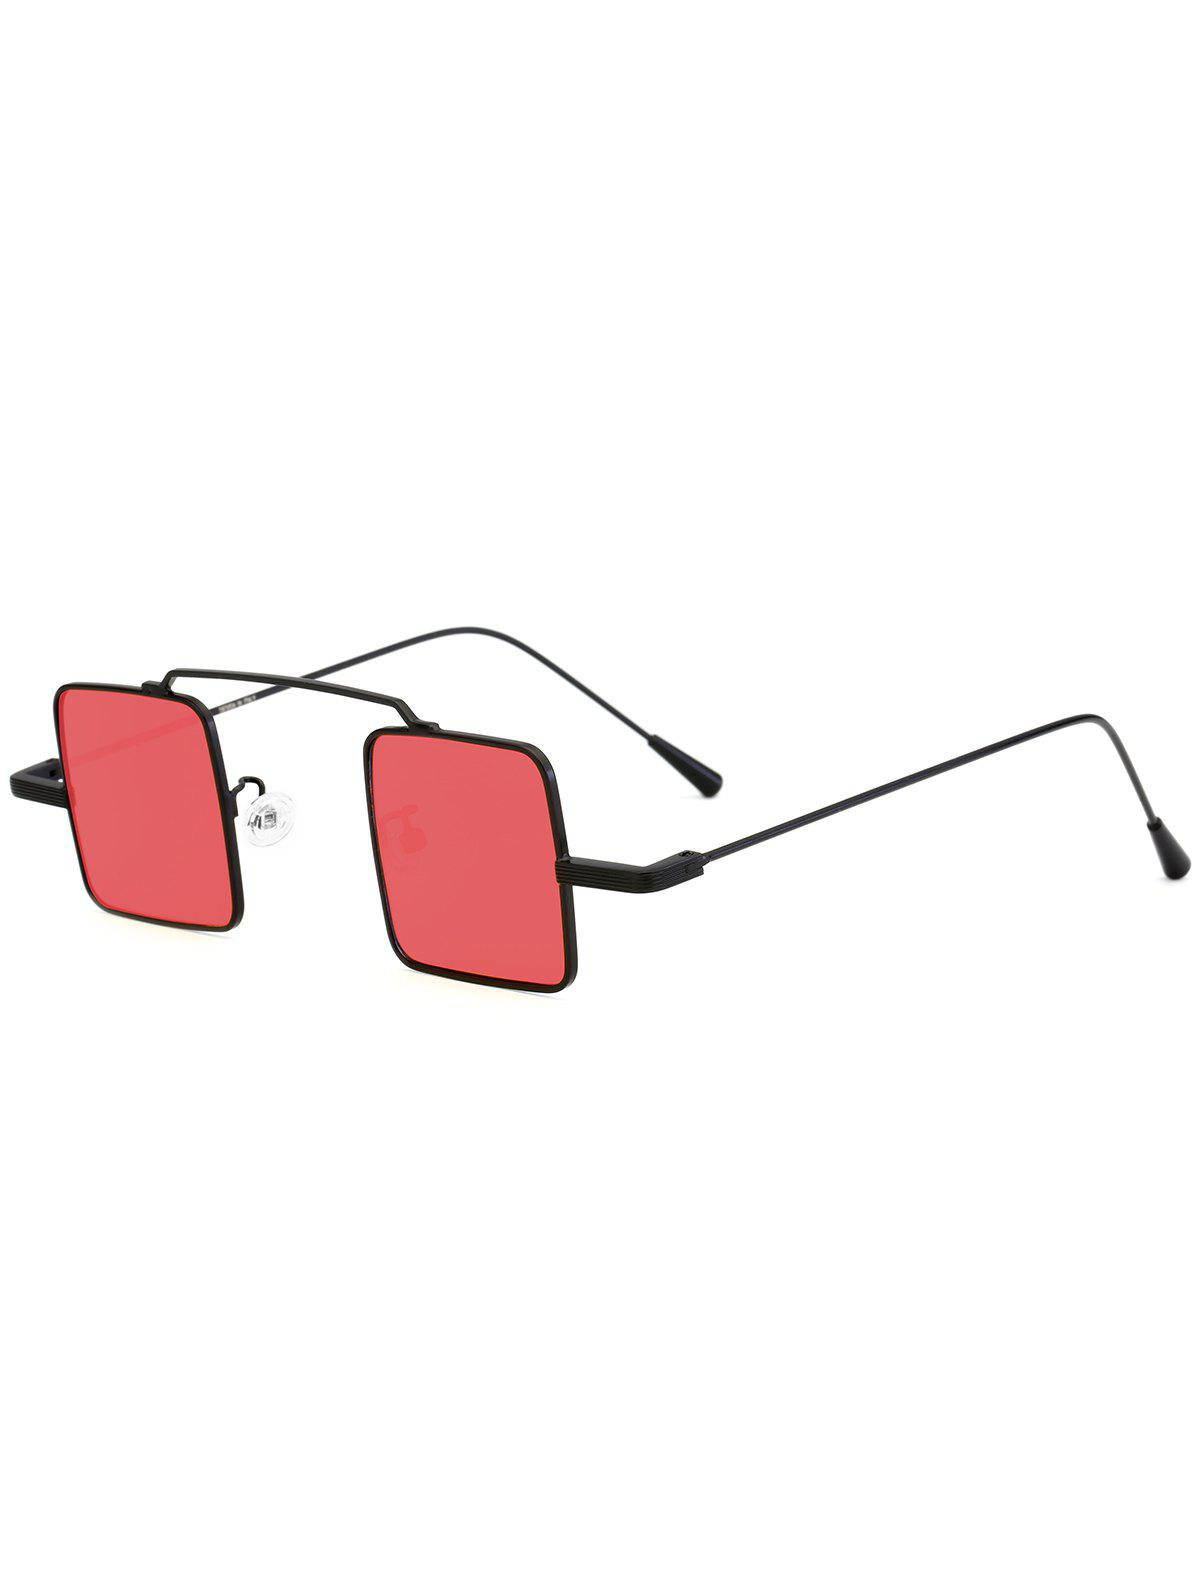 UV Protection Full Frame Squared Sunglasses - BLACK FRAME/RED LENS